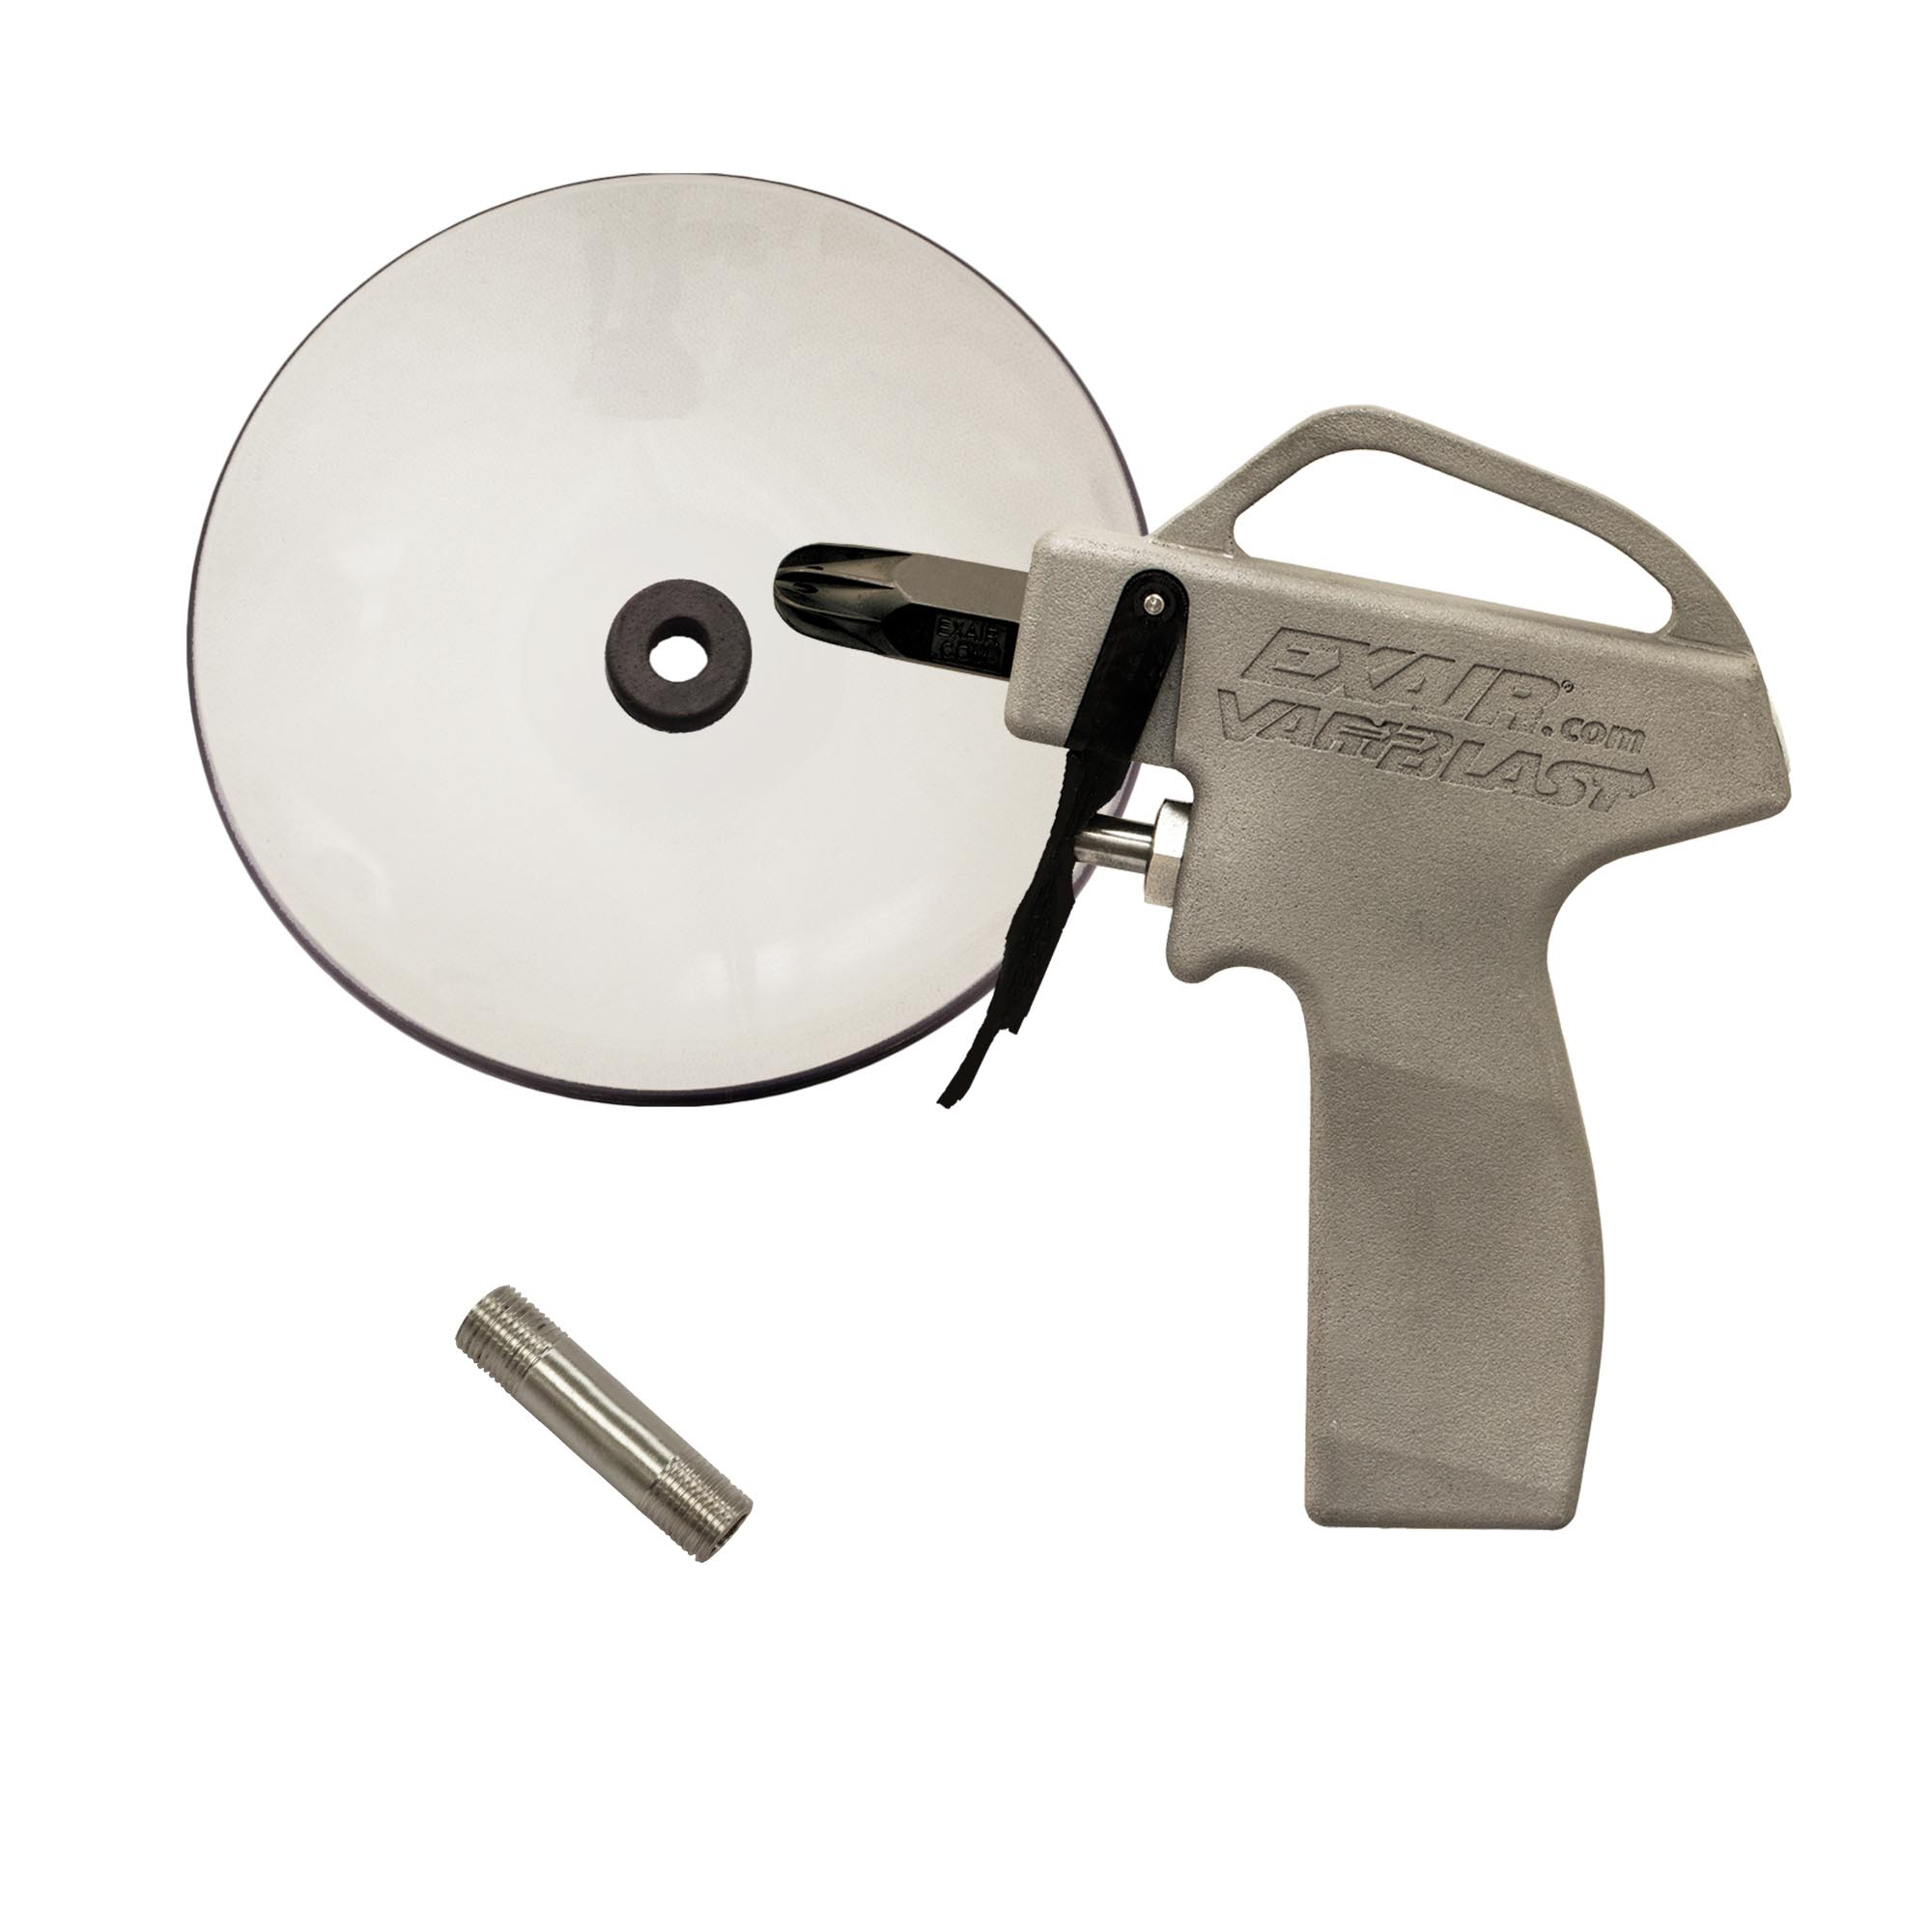 Model 1699-PEEK-CS VariBlast Compact Safety Air Gun with 1102-PEEK Mini Super Air Nozzle and Chip Shield